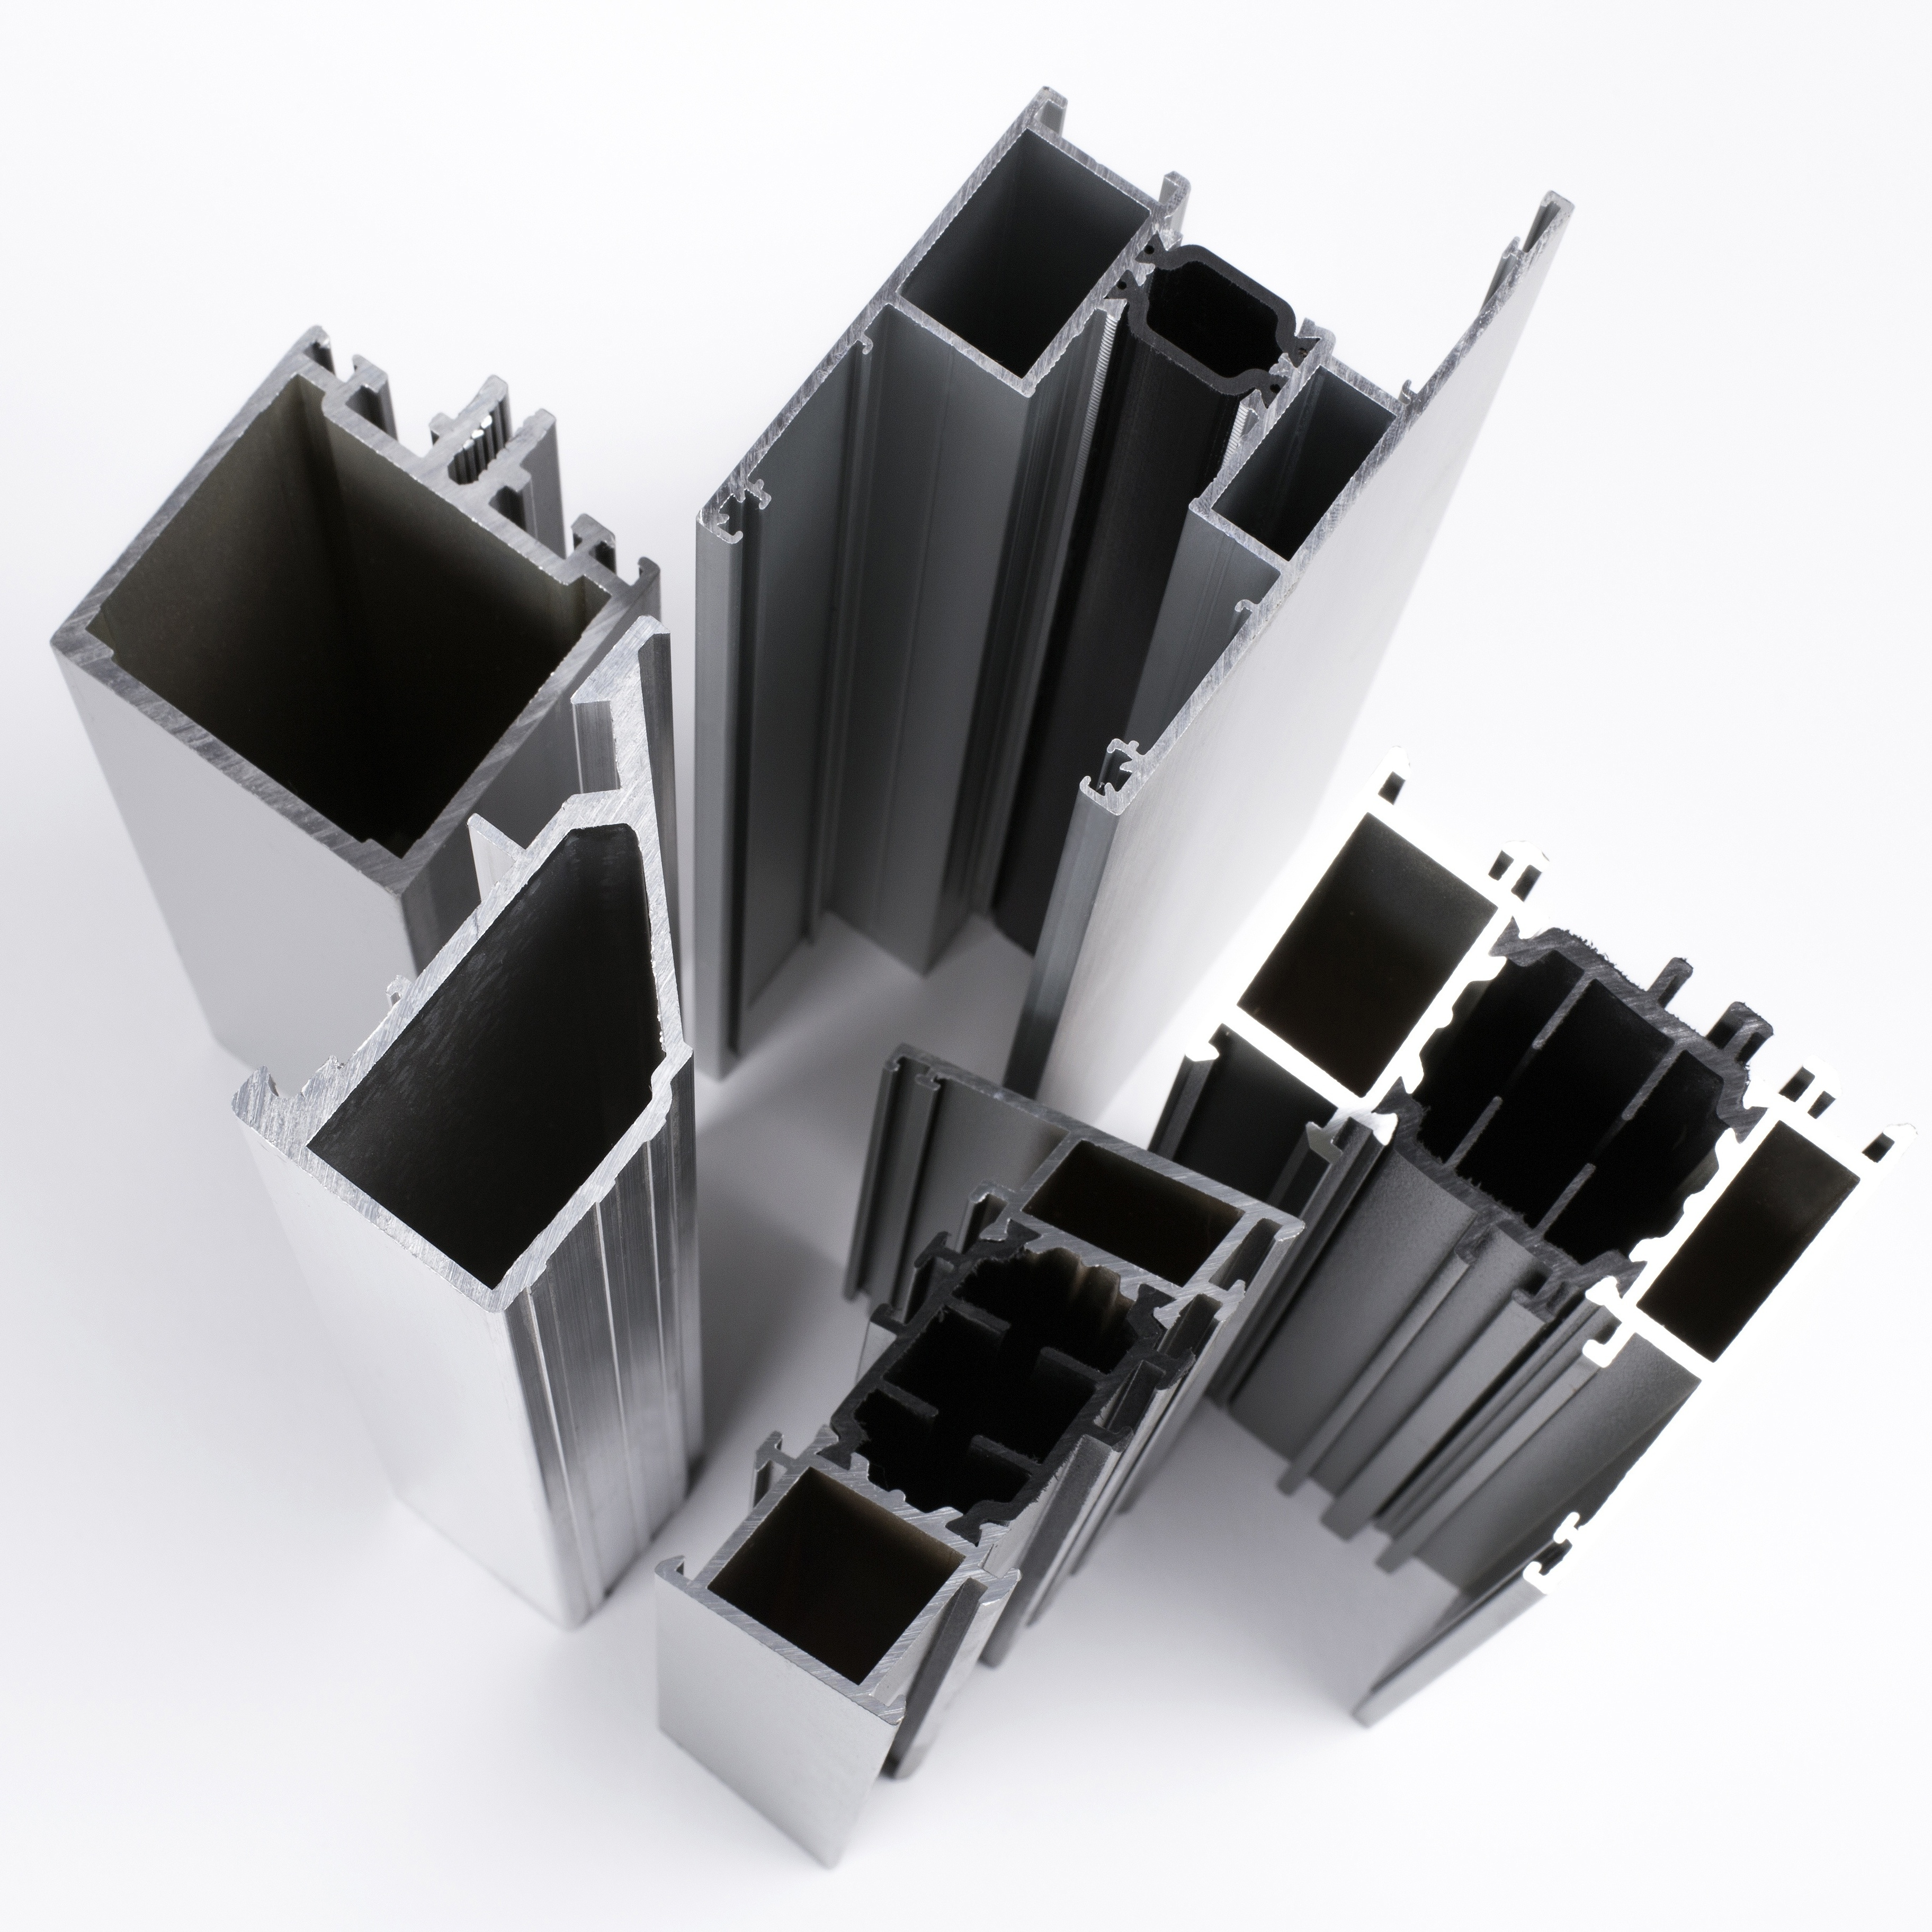 Different Aluminium Profiles-682656-edited.jpg